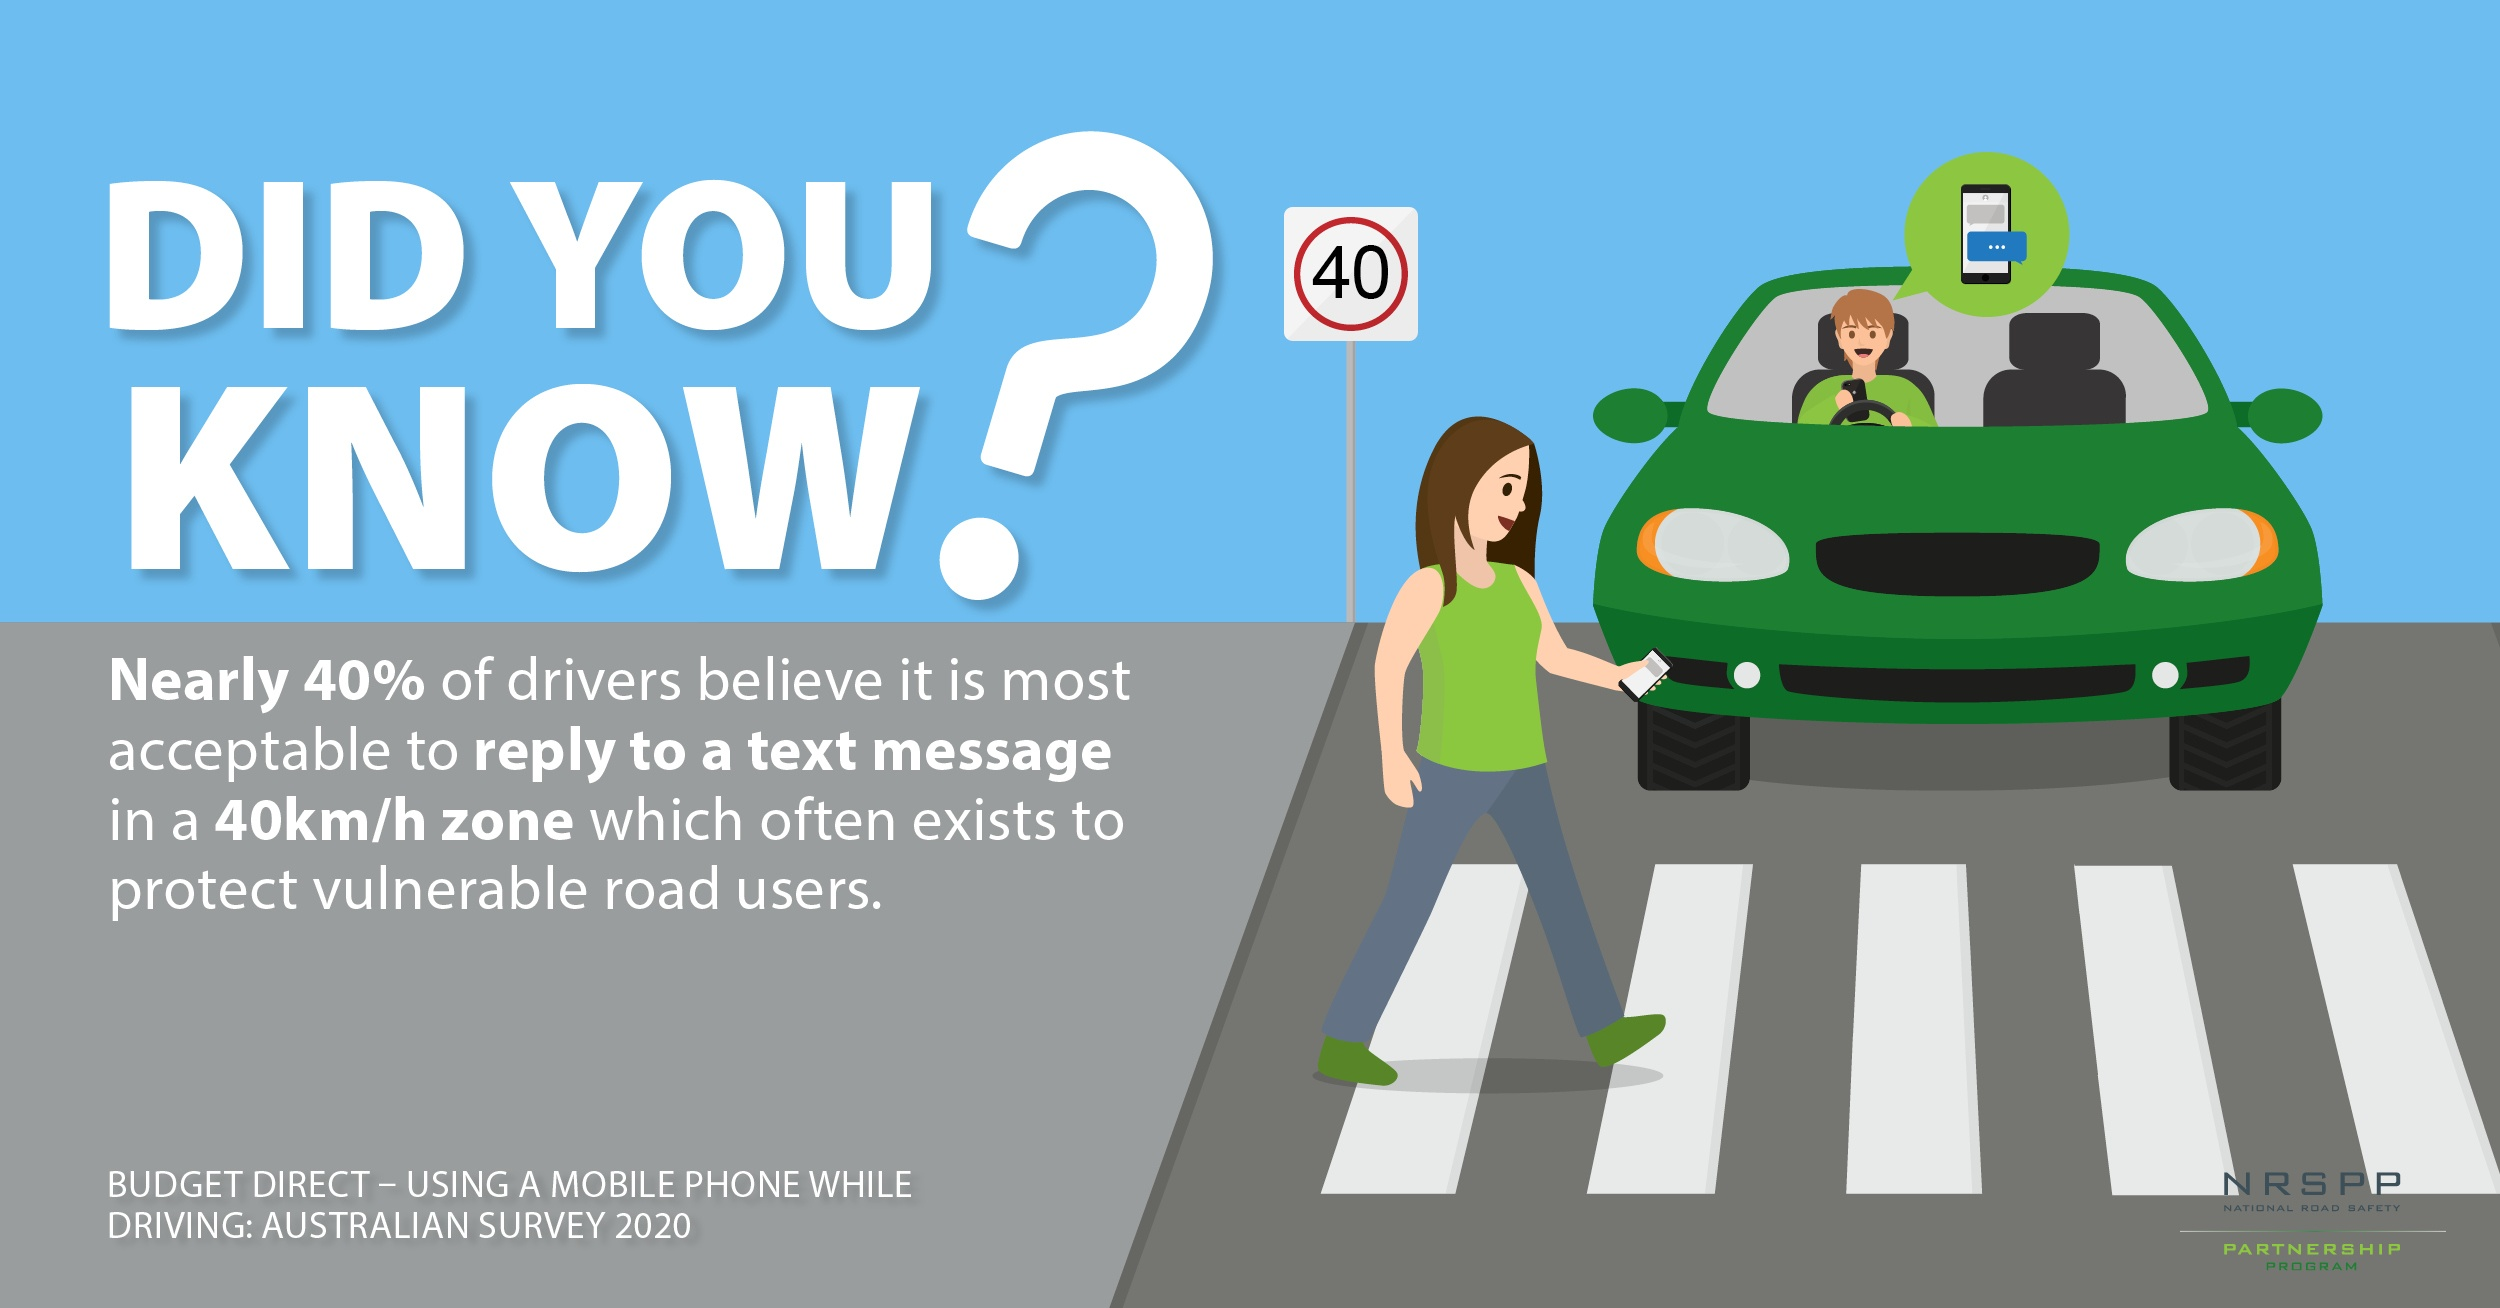 NRSPP Australia » Using a Mobile Phone While Driving: Australian Survey 2020 #DidYouKnow